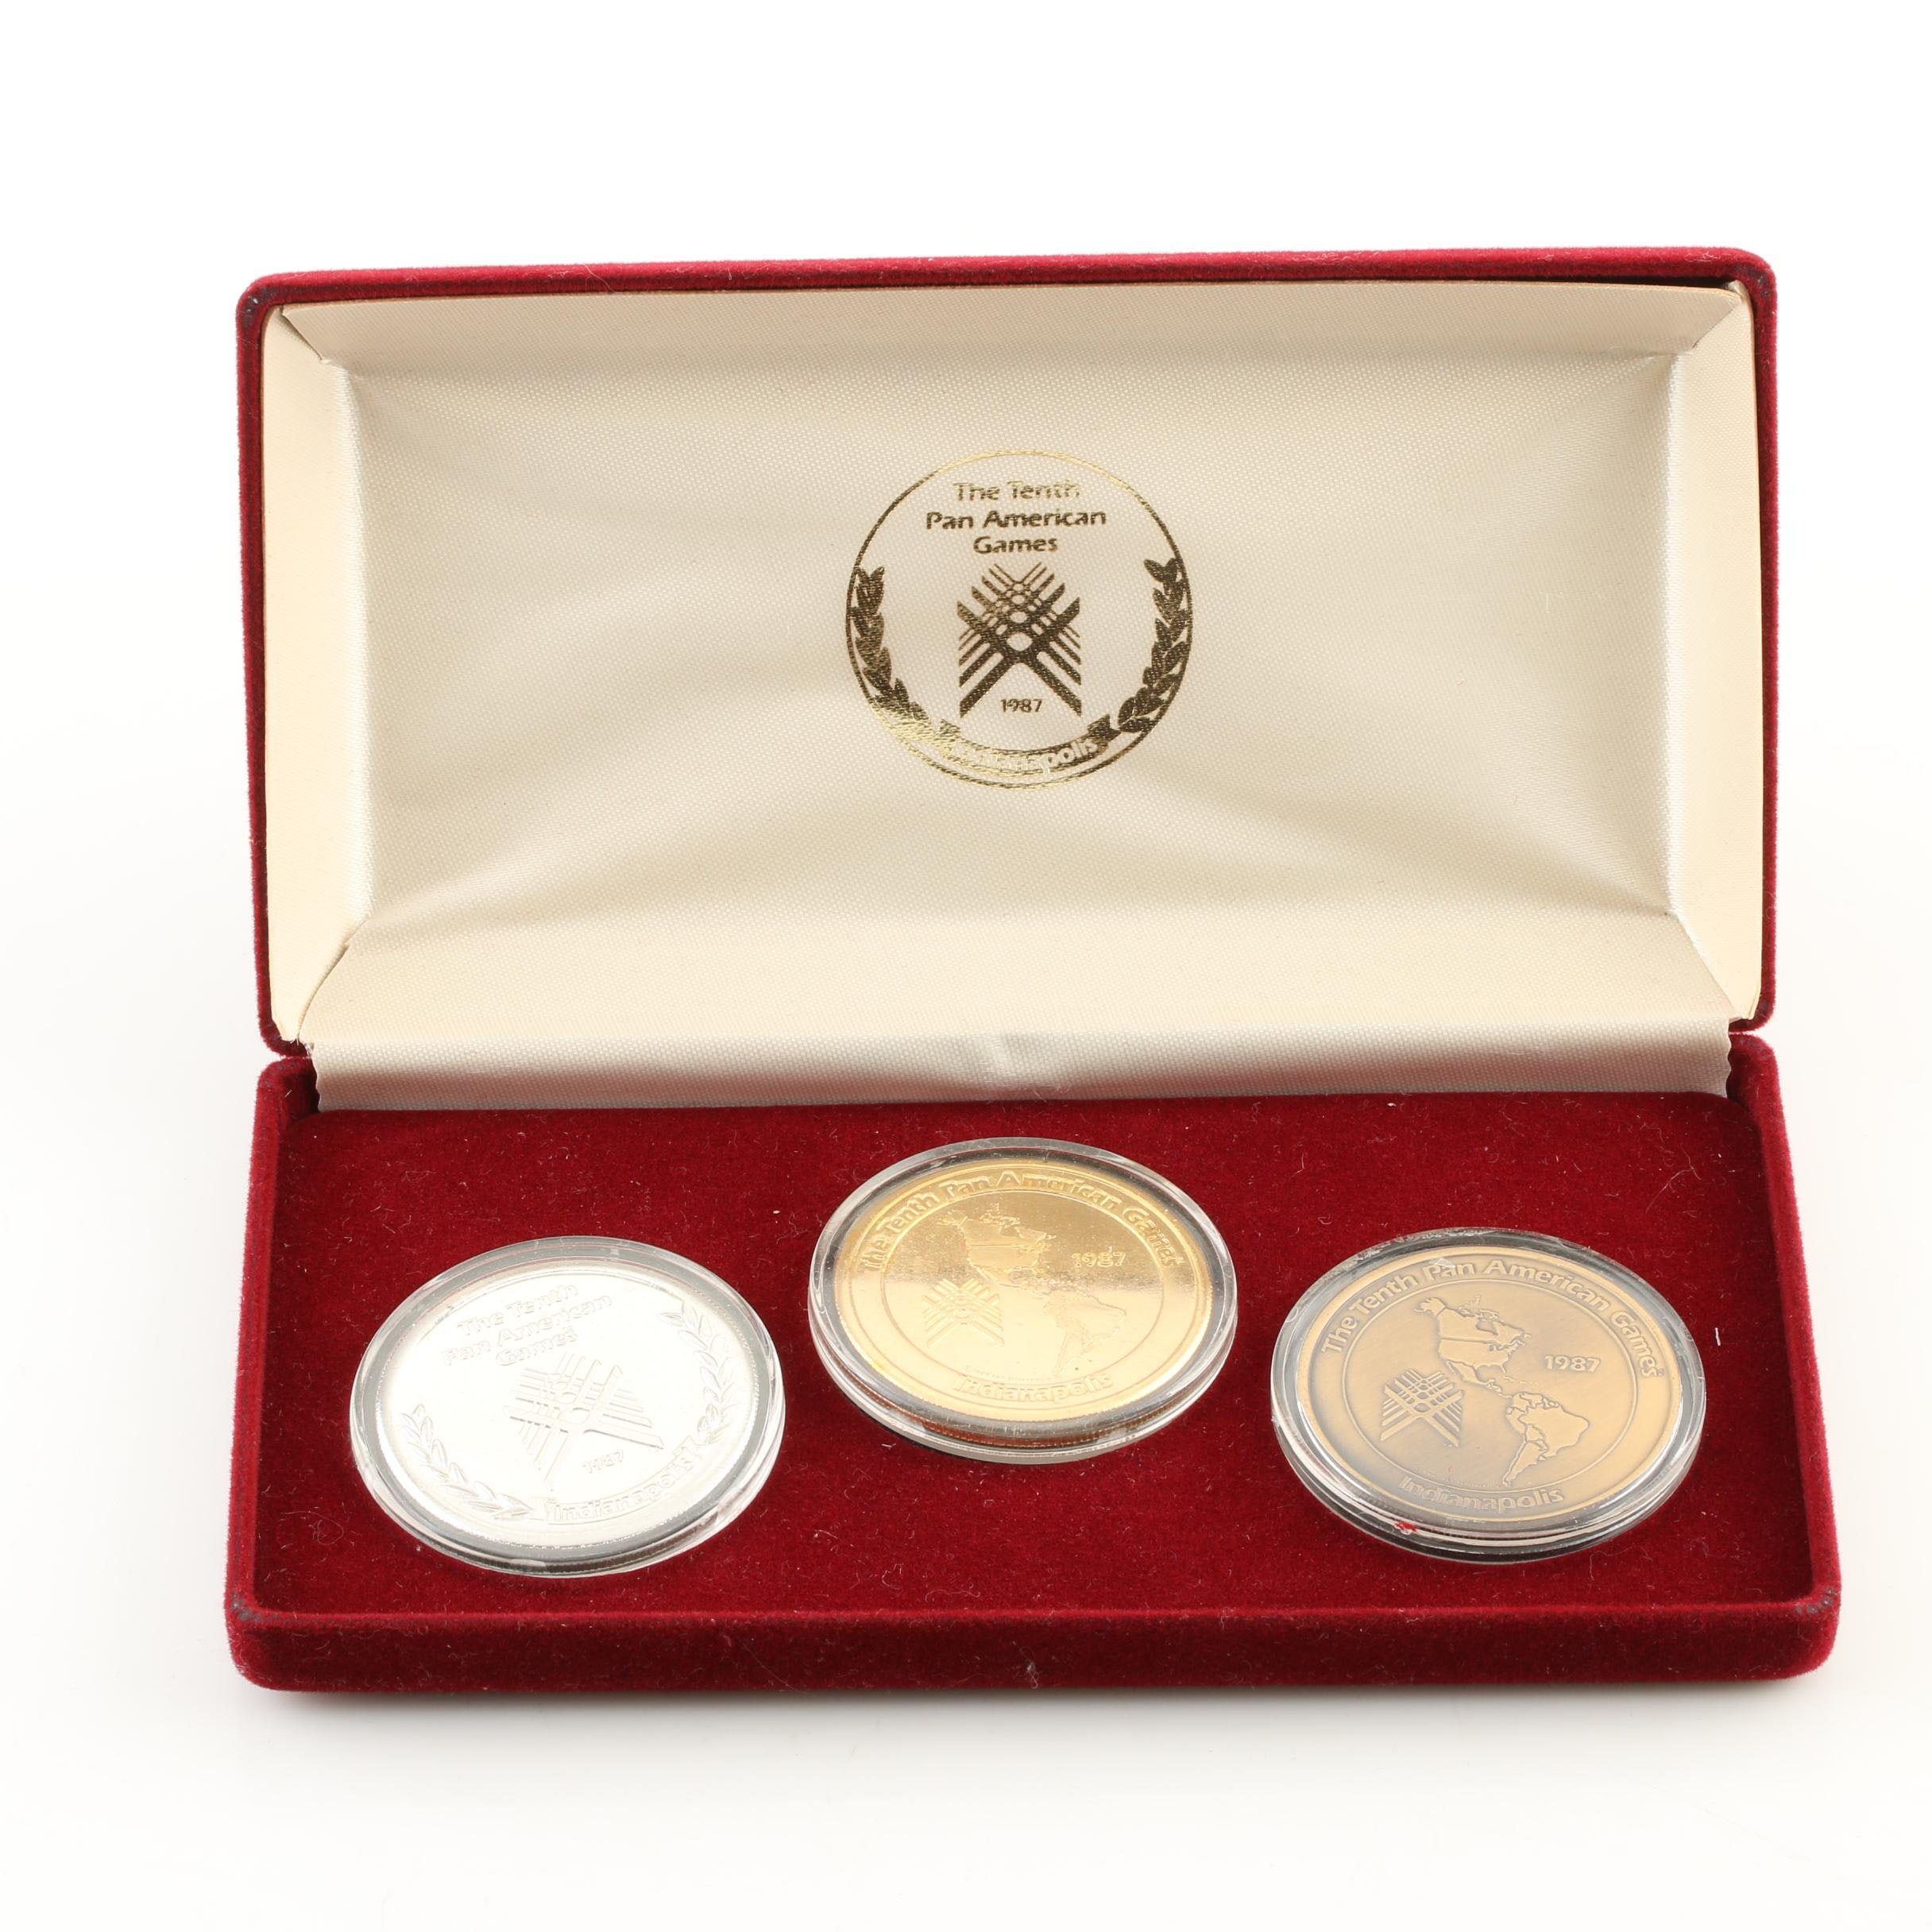 1987 Pan American Games Three Medal Set